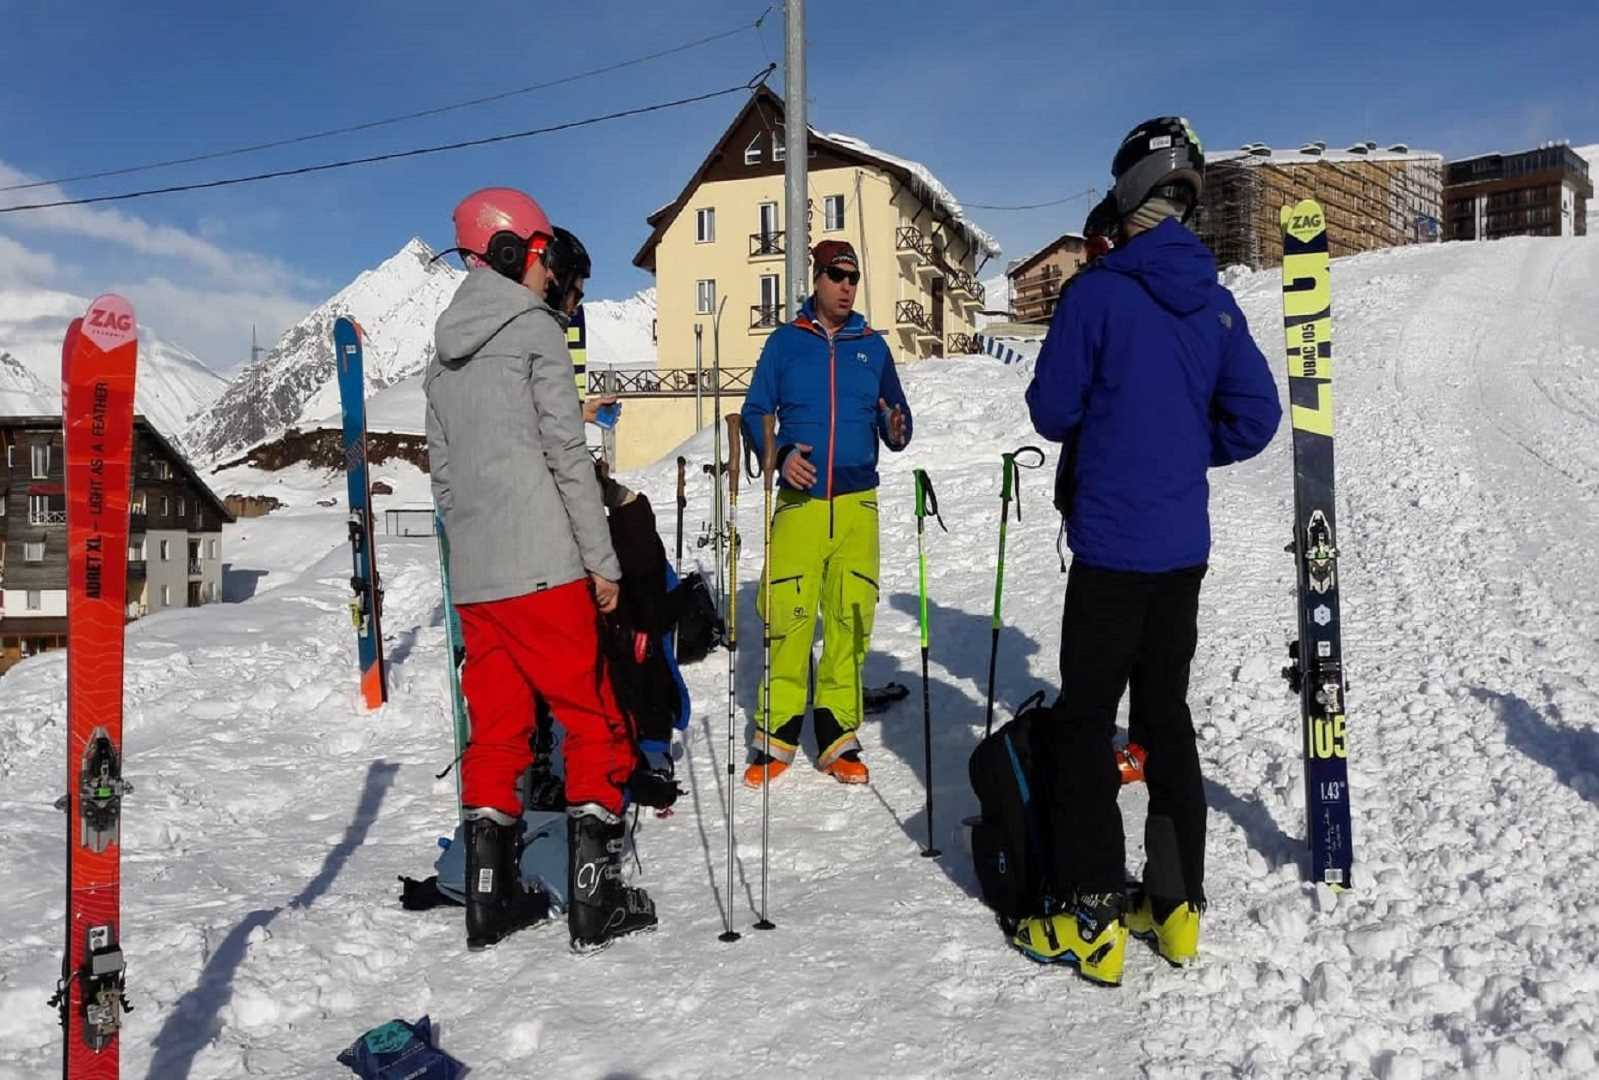 Ski touring introductory course 1 Day